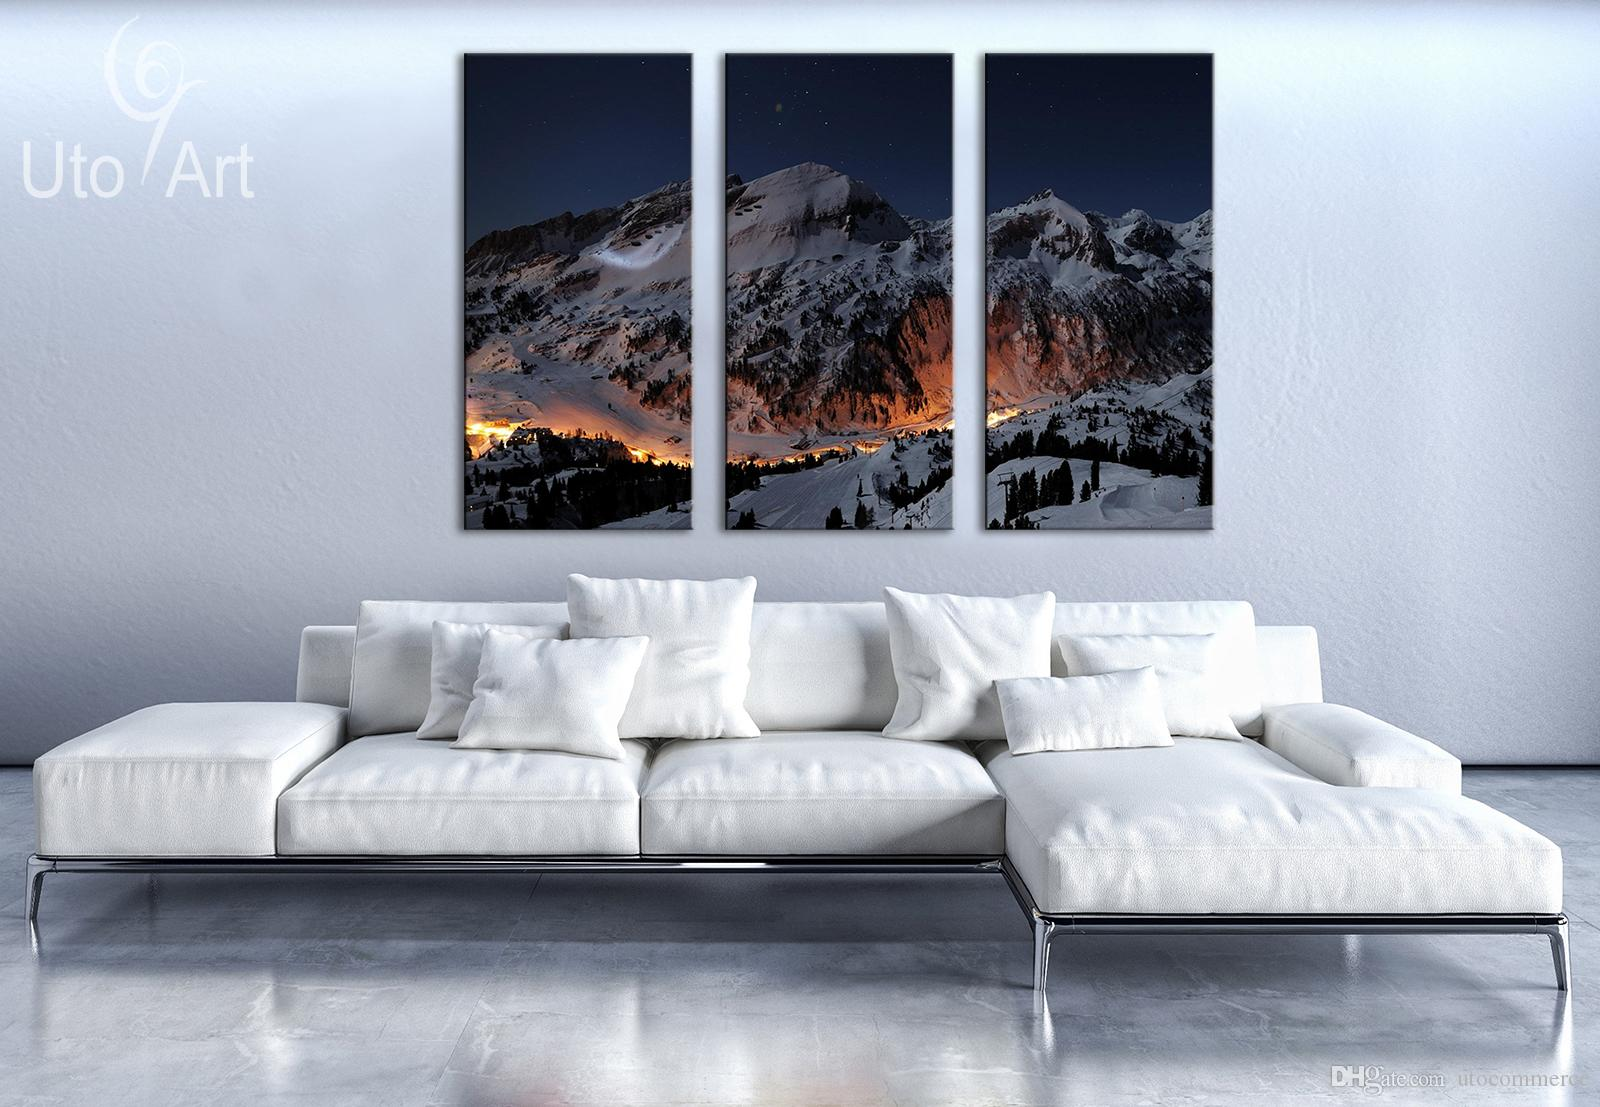 Unique Wall Decor Painting the Snow Mountain Landscape Art Print Decorative Digital Picture Canvas Printing For Living room